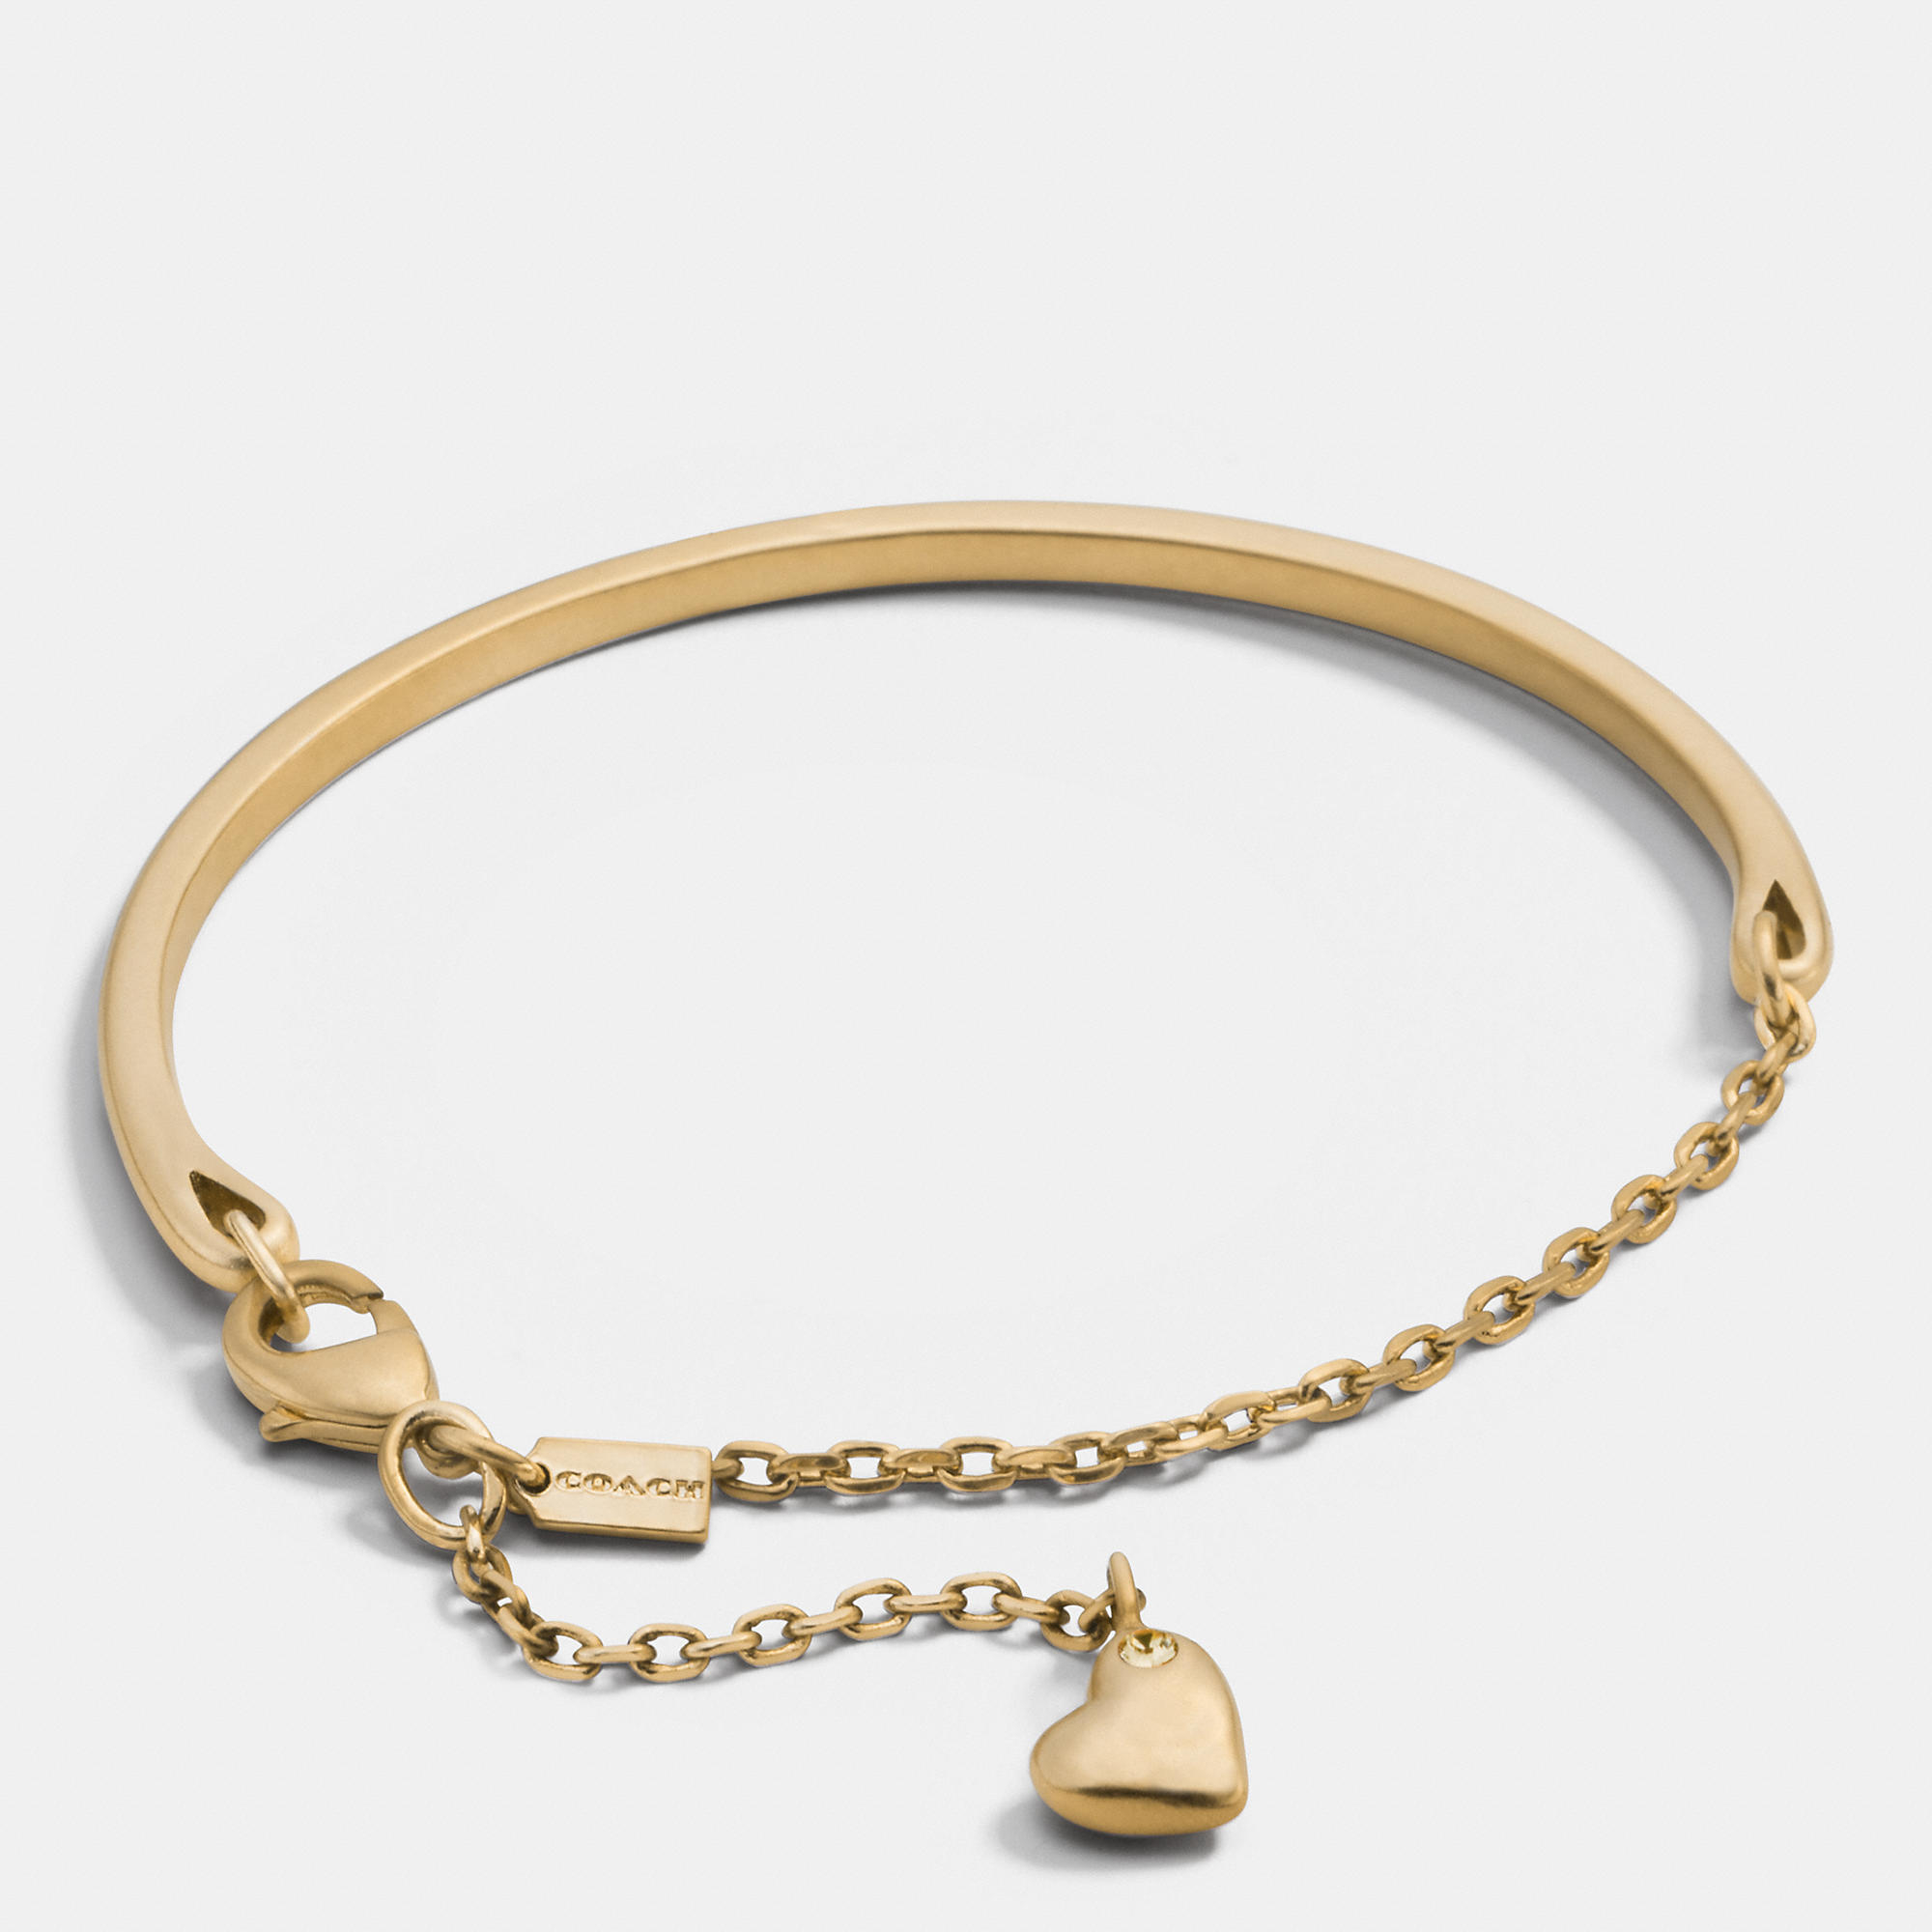 Coach Pave Sculpted Heart Charm Bracelet in Metallic